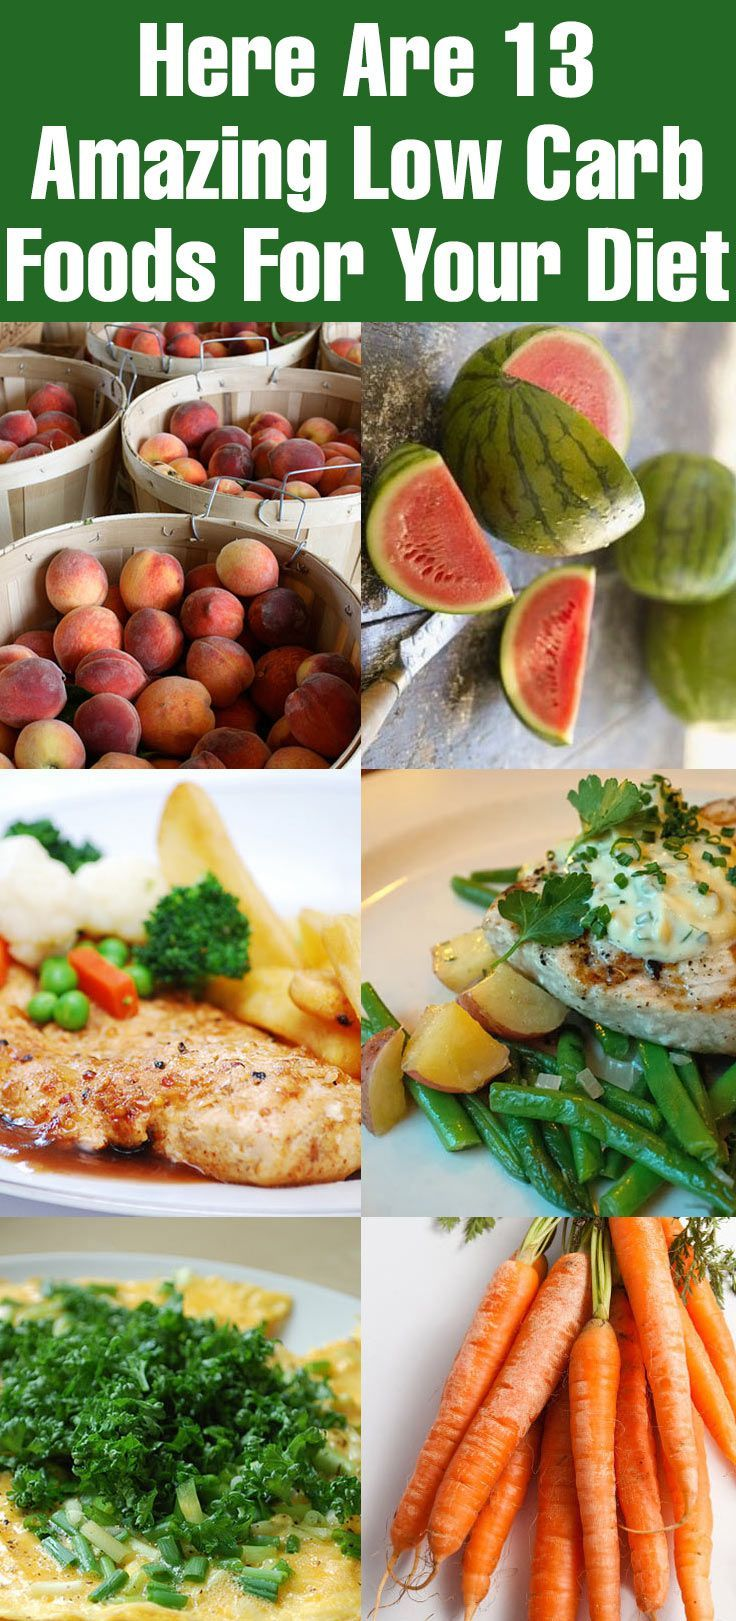 Low carb diet is a good way to go about losing weight. Here is a low diet plan along with a menu that will help you get on the road to weight loss!